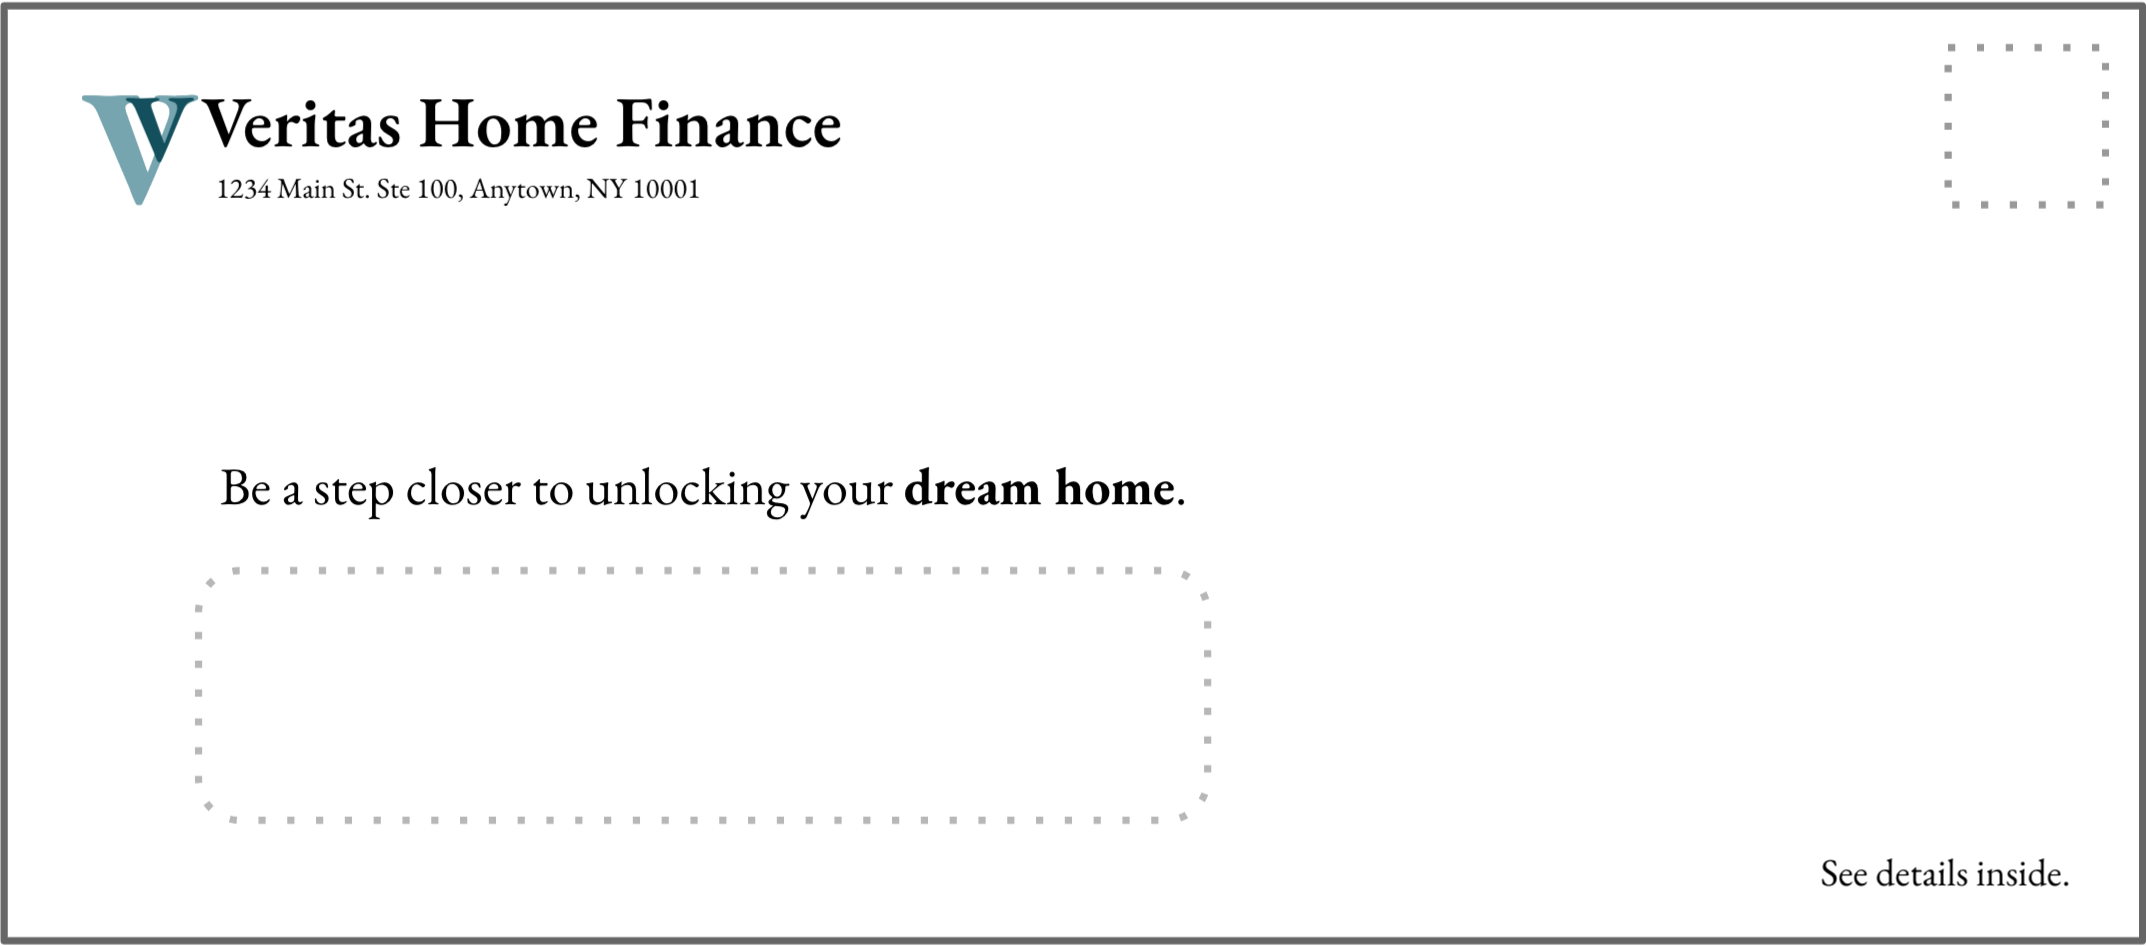 Home Financing Outer Envelope